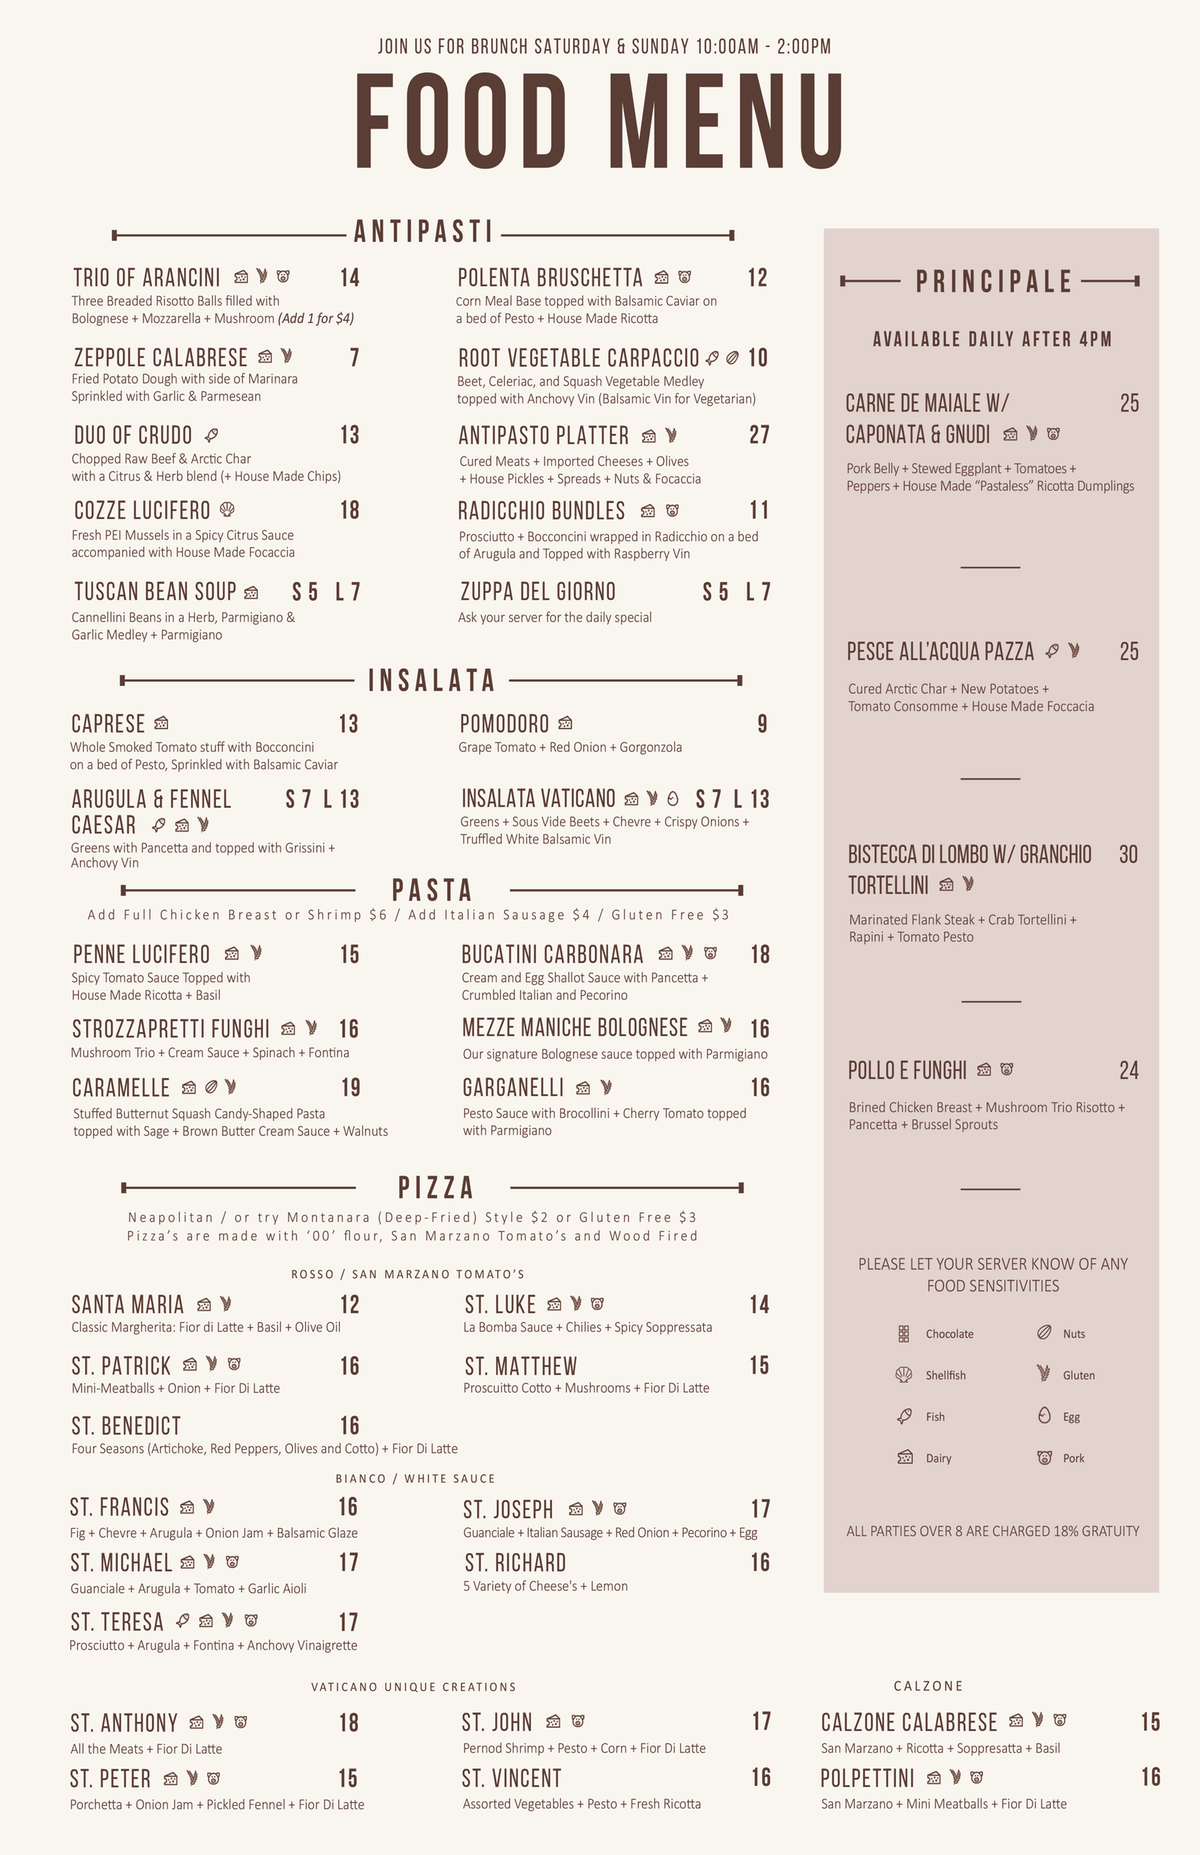 Need some small edits done to a menu